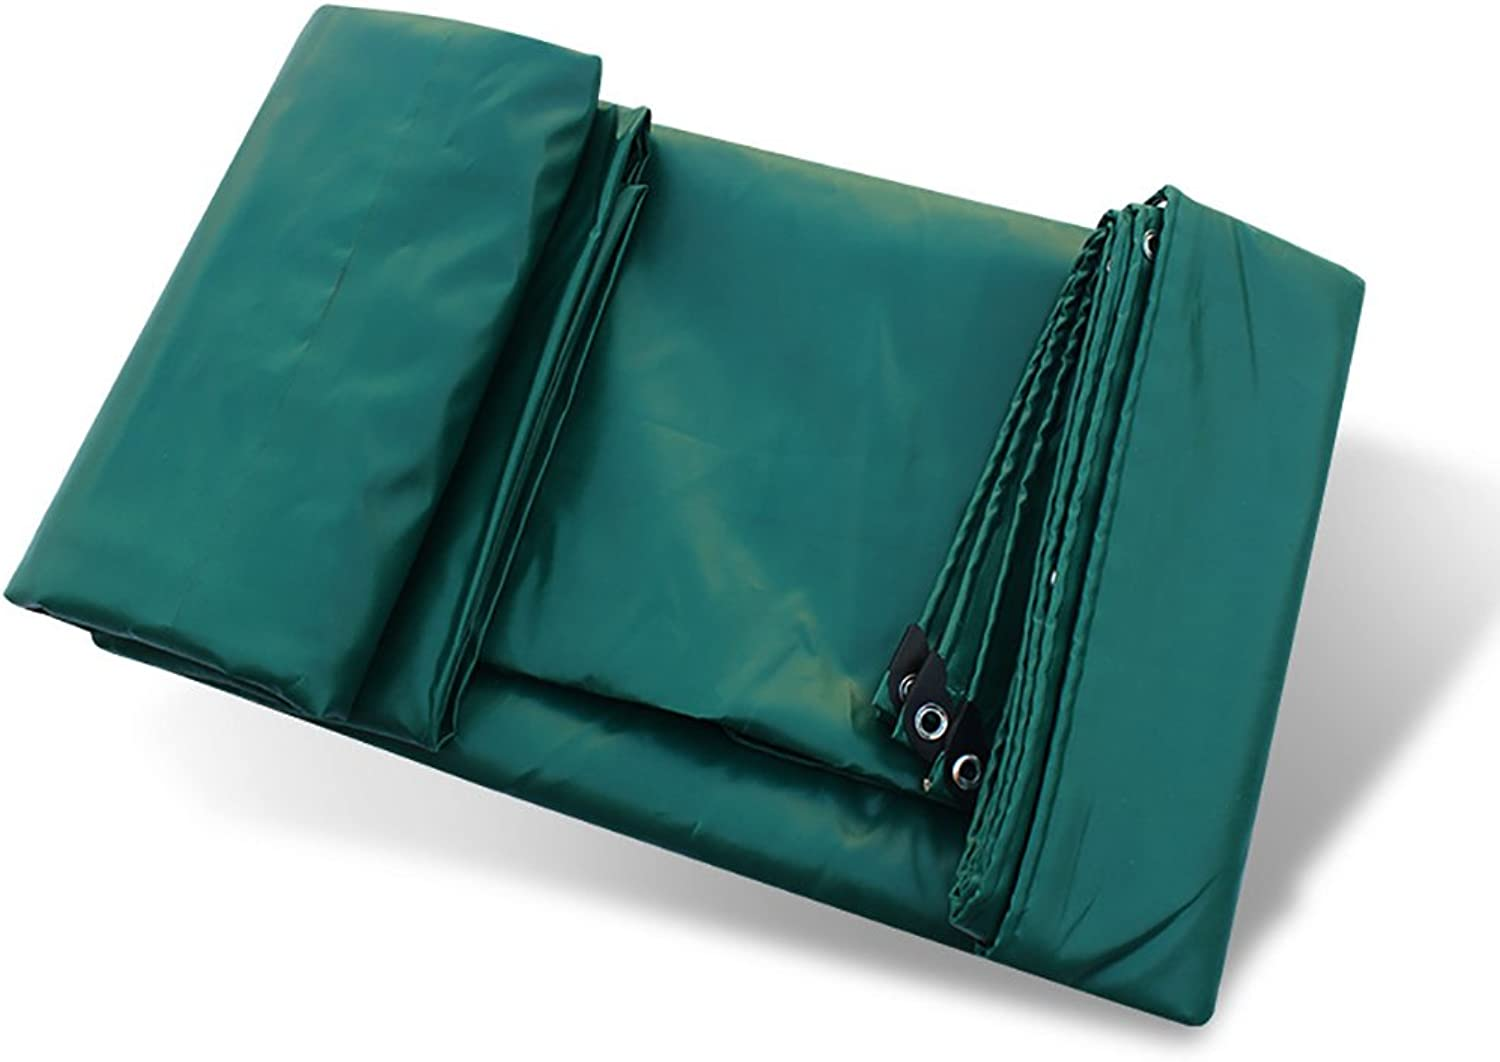 Green highStrength Silk ThreeProof Cloth, PVC Plastic Cloth, Waterproof Sunscreen AntiAging Tarpaulin, car Tarpaulin, Rubberized Canvas, Thickness 0.5mm, 550g   m2, 7 Kinds Sizes to Choose from